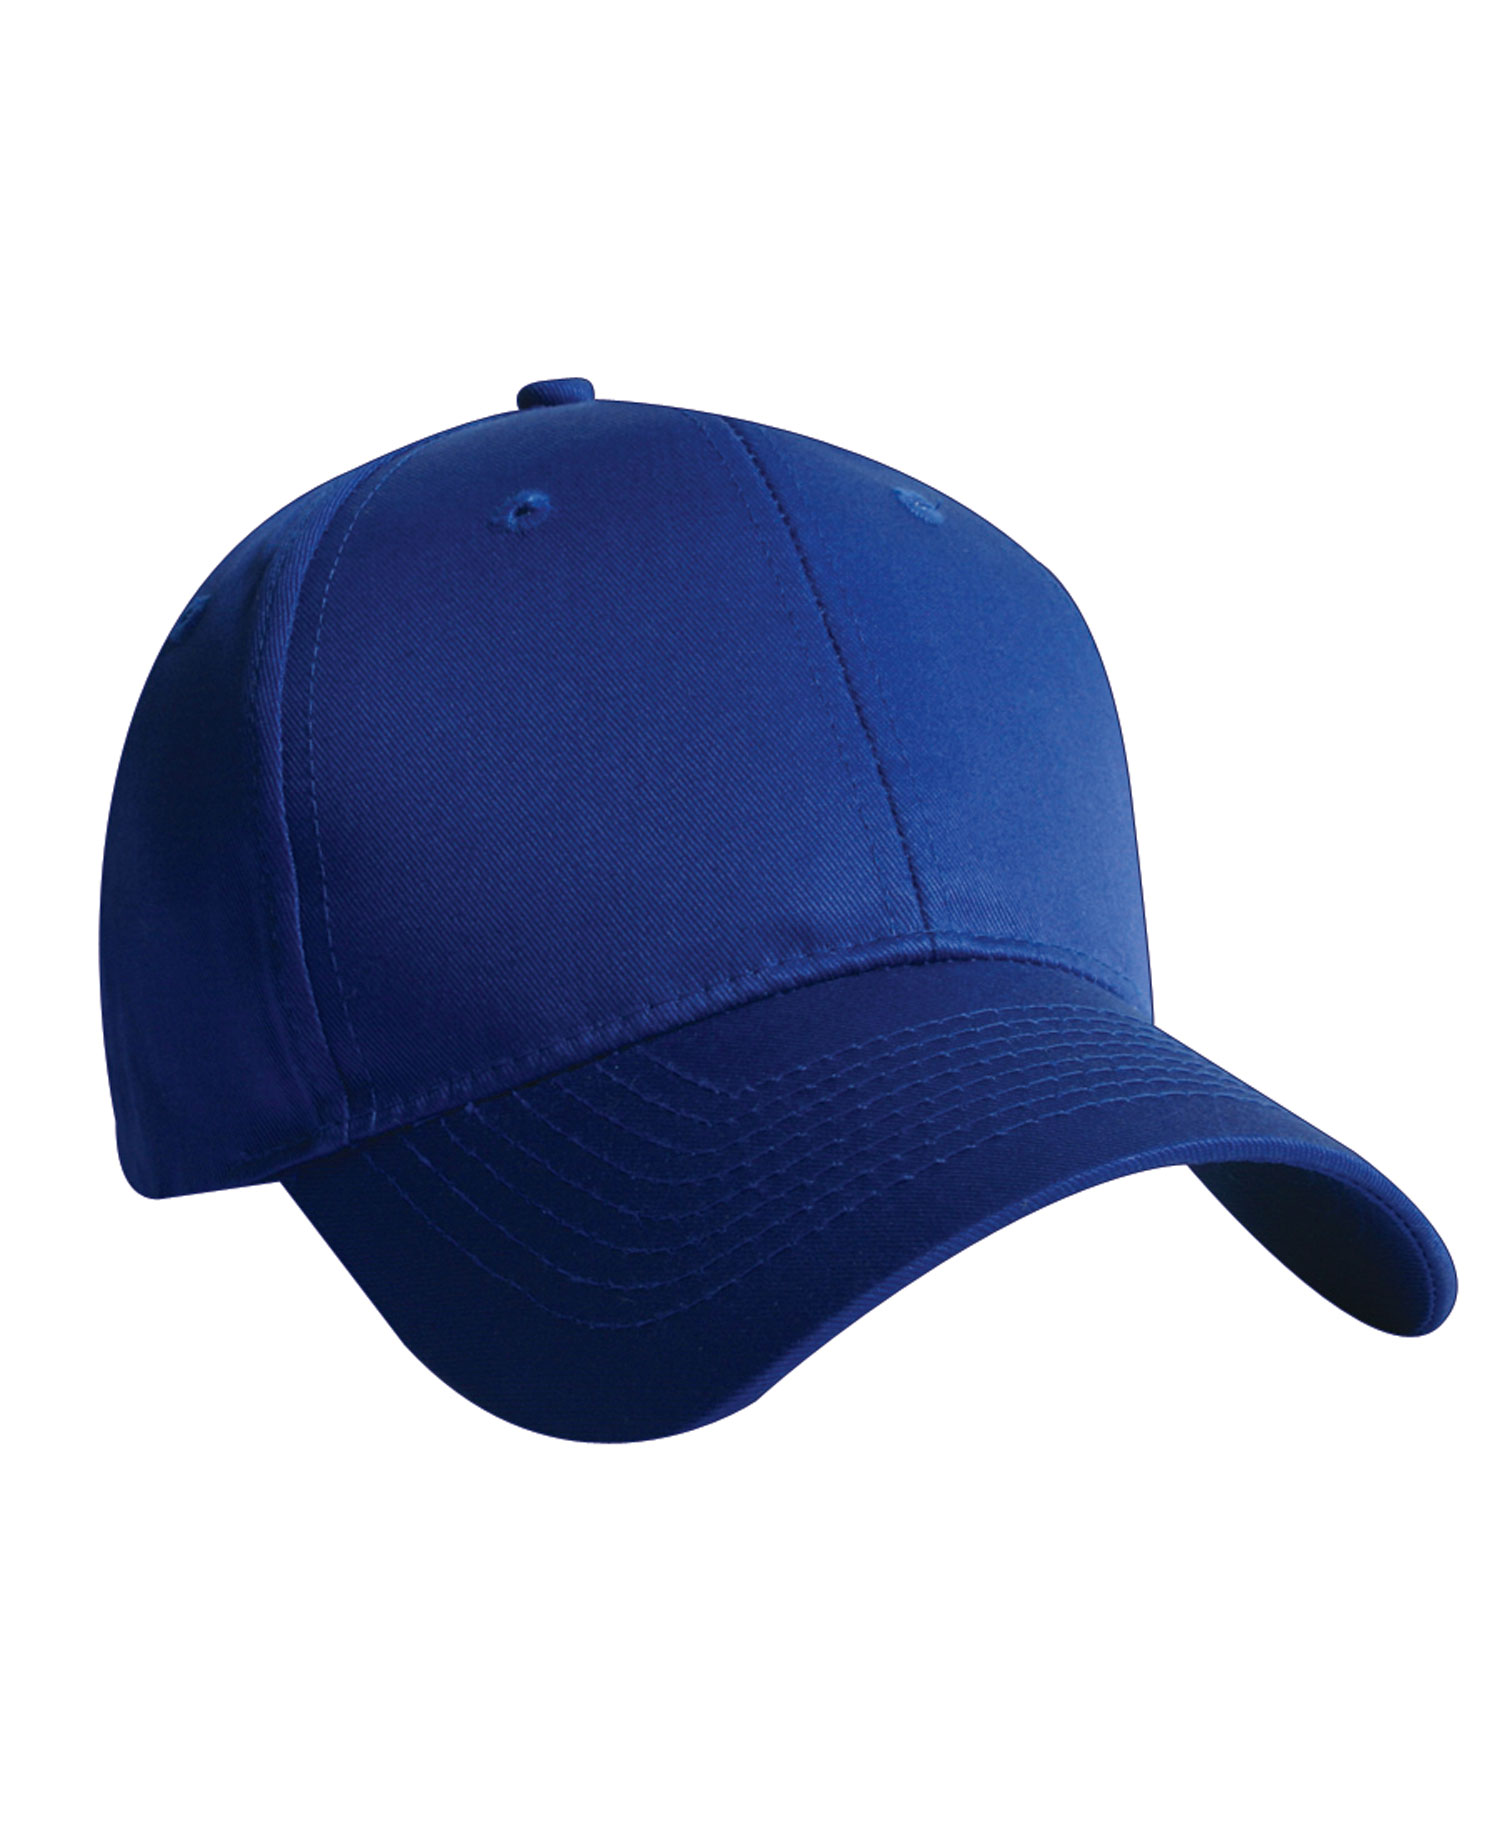 KC Caps - KC6000 Const. Cotton Twill Cap